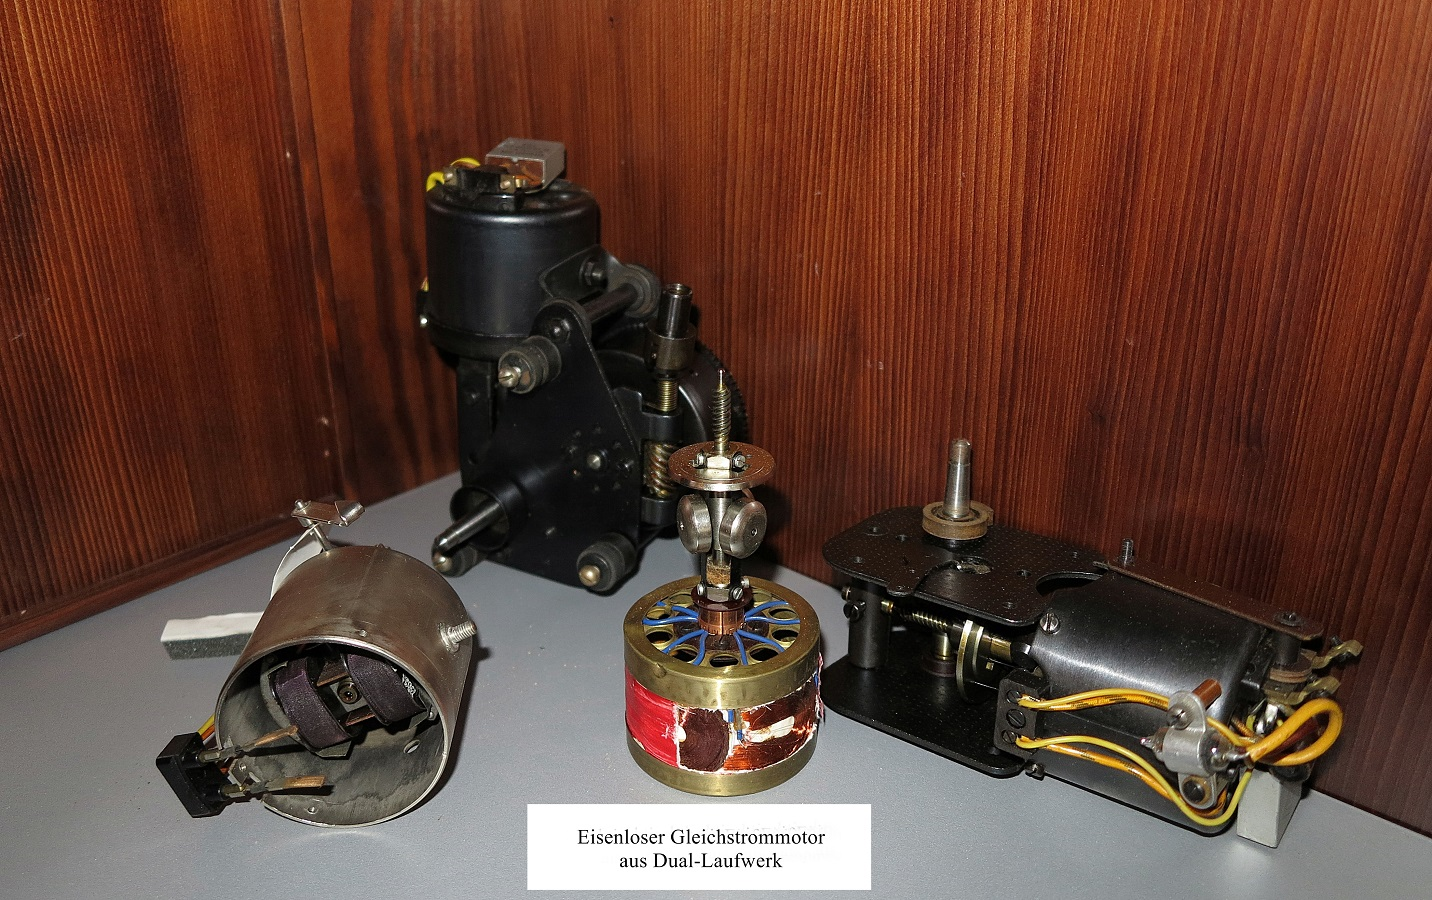 Iron electric motor combined with a spring drive (Dualmotor)